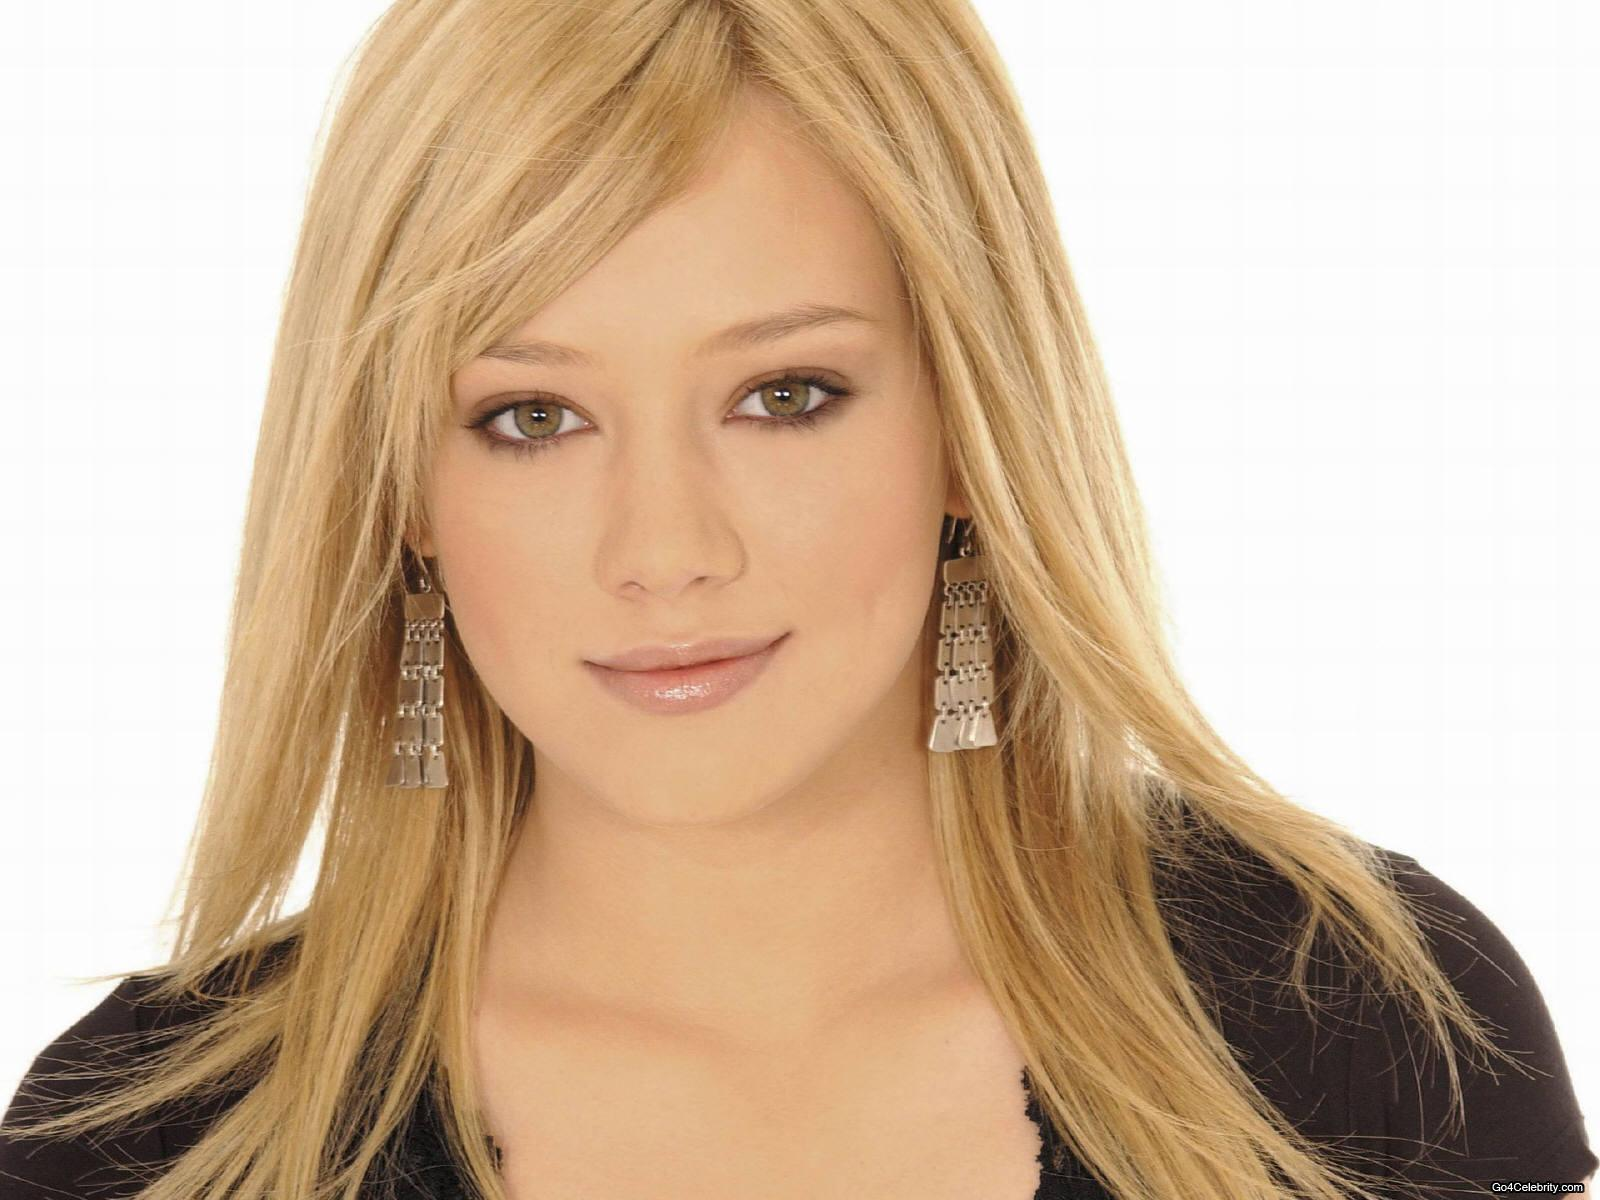 Hilary duff - Hilary Duff Wallpaper (21055891) - Fanpop